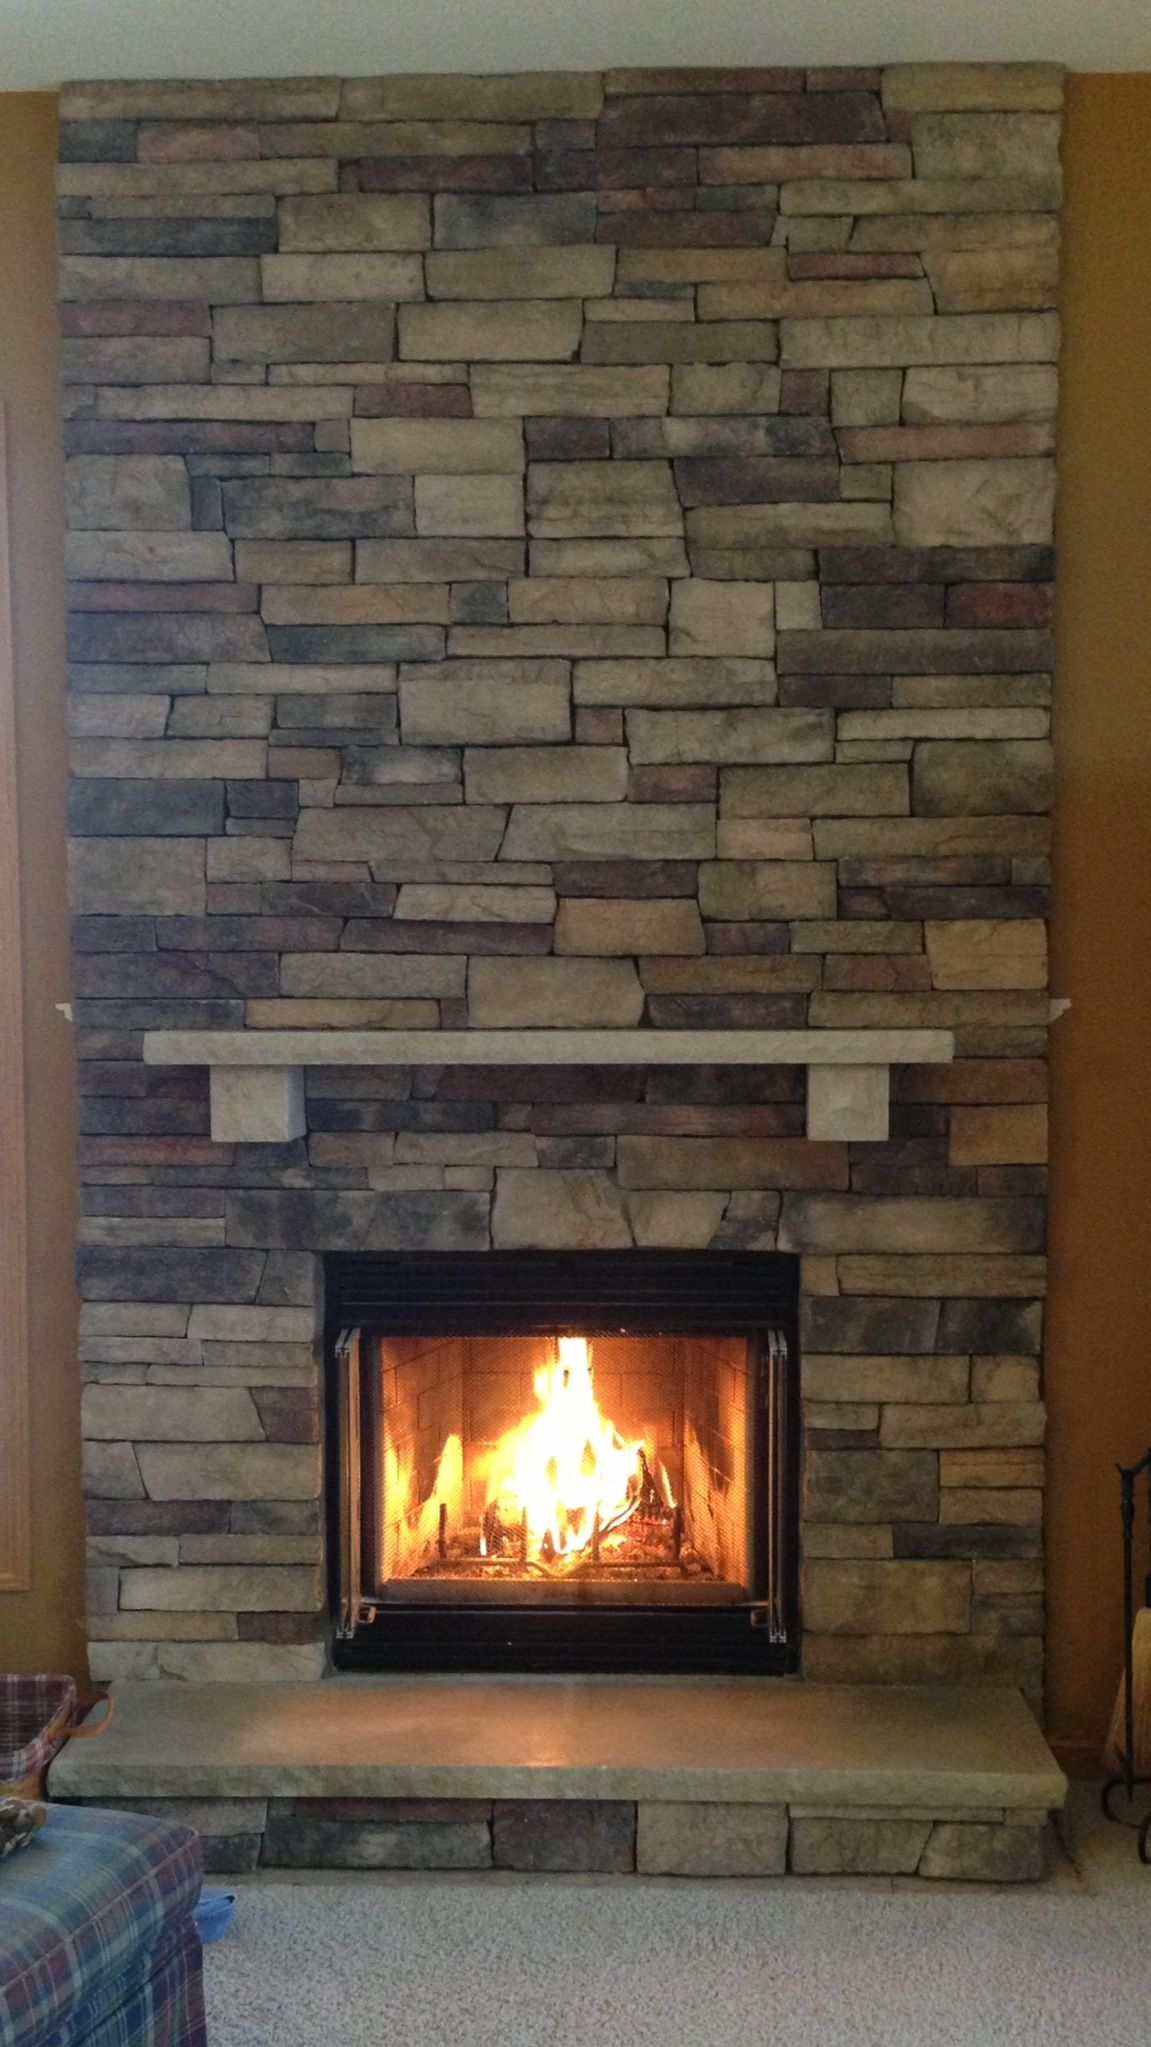 Boral Chardonnay Country Ledgestone Fireplace Stacked With